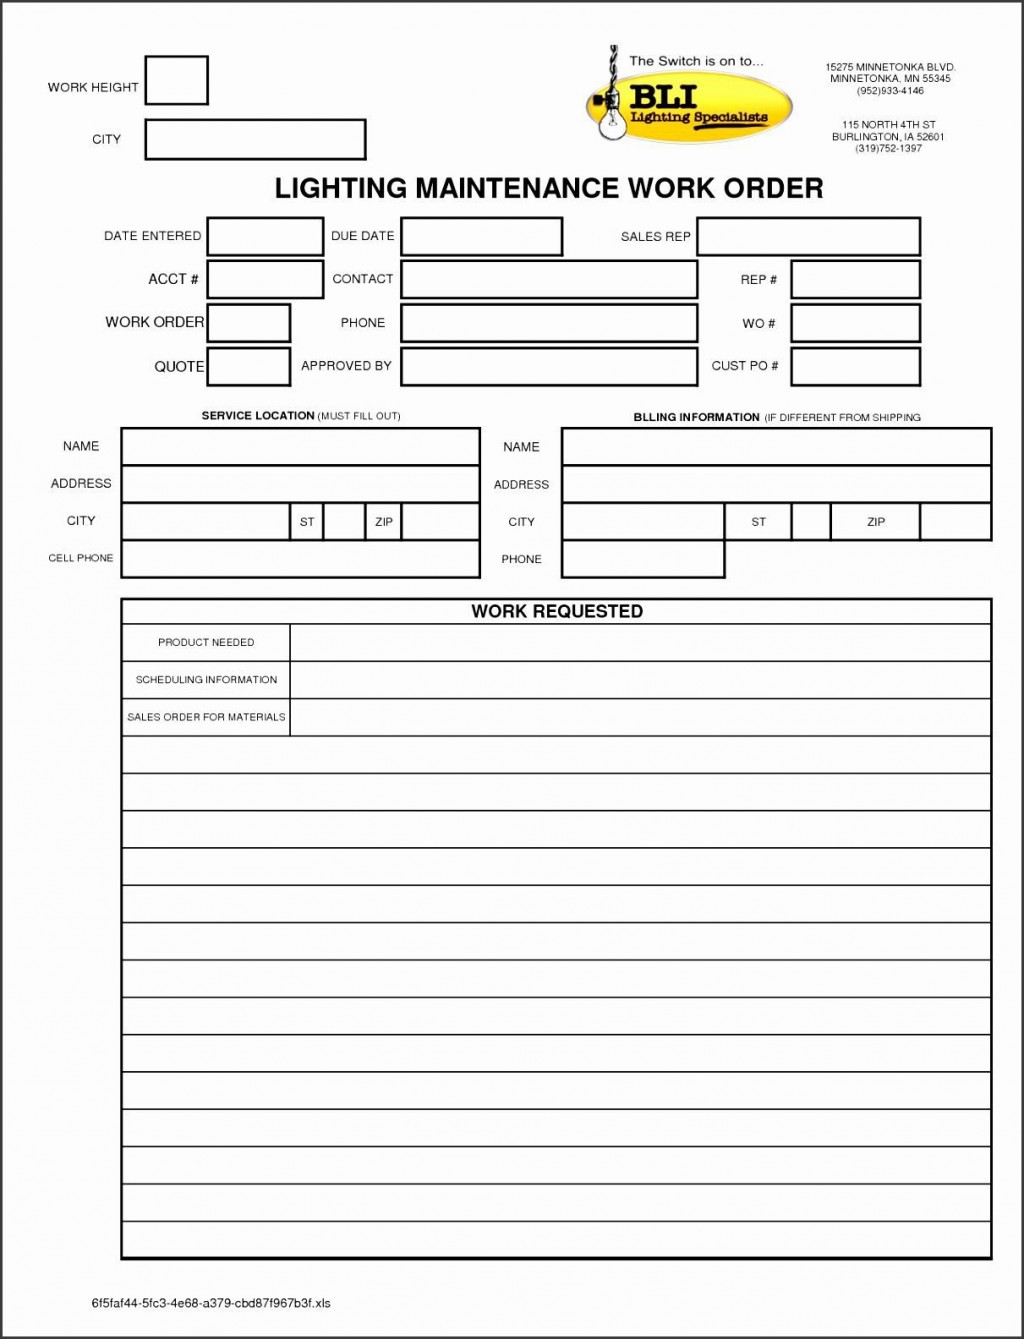 001 Archaicawful Maintenance Work Order Template Concept  Form Free SampleLarge